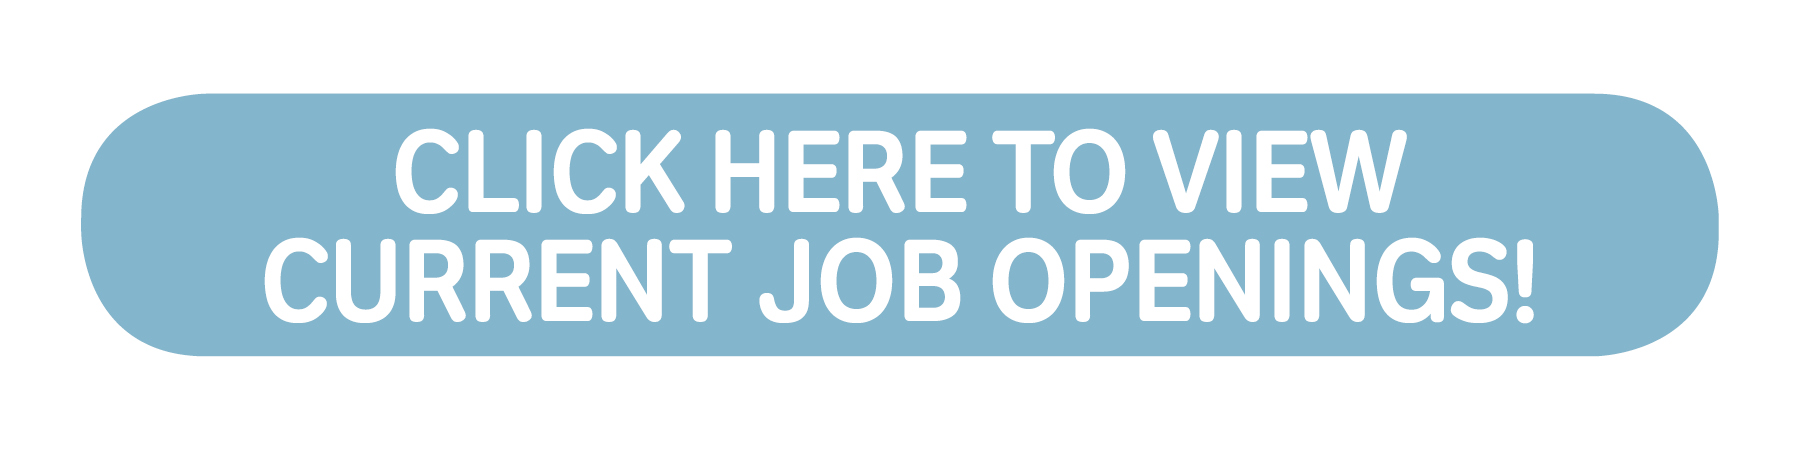 Click here to view open jobs!